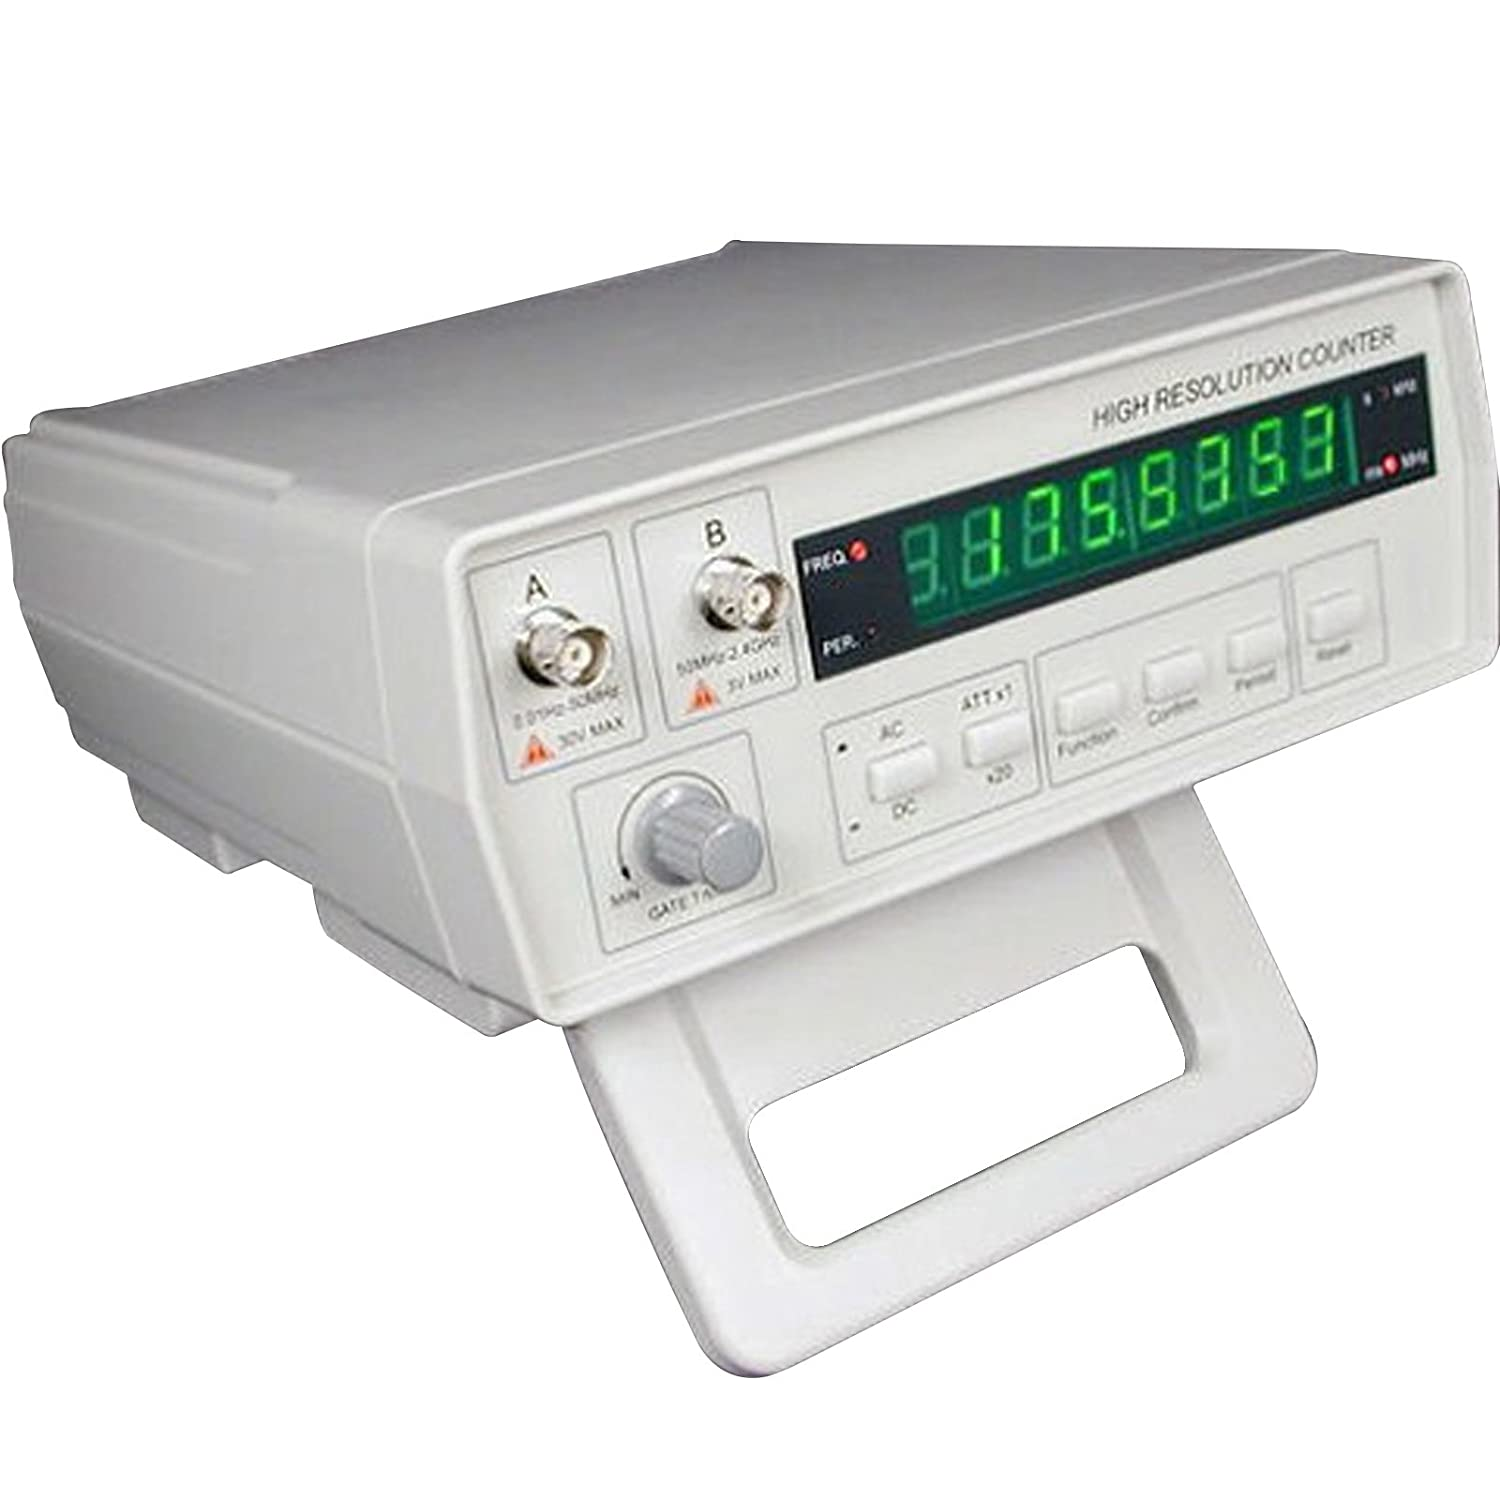 Gain Express Vc3165 Radio Frequency Counter 001hz24ghz W Bnc Test 0 500mhz Pic16f876 Rf Power Meter Leads High Resolution Professional Signal Tester 8 Digits Led Display